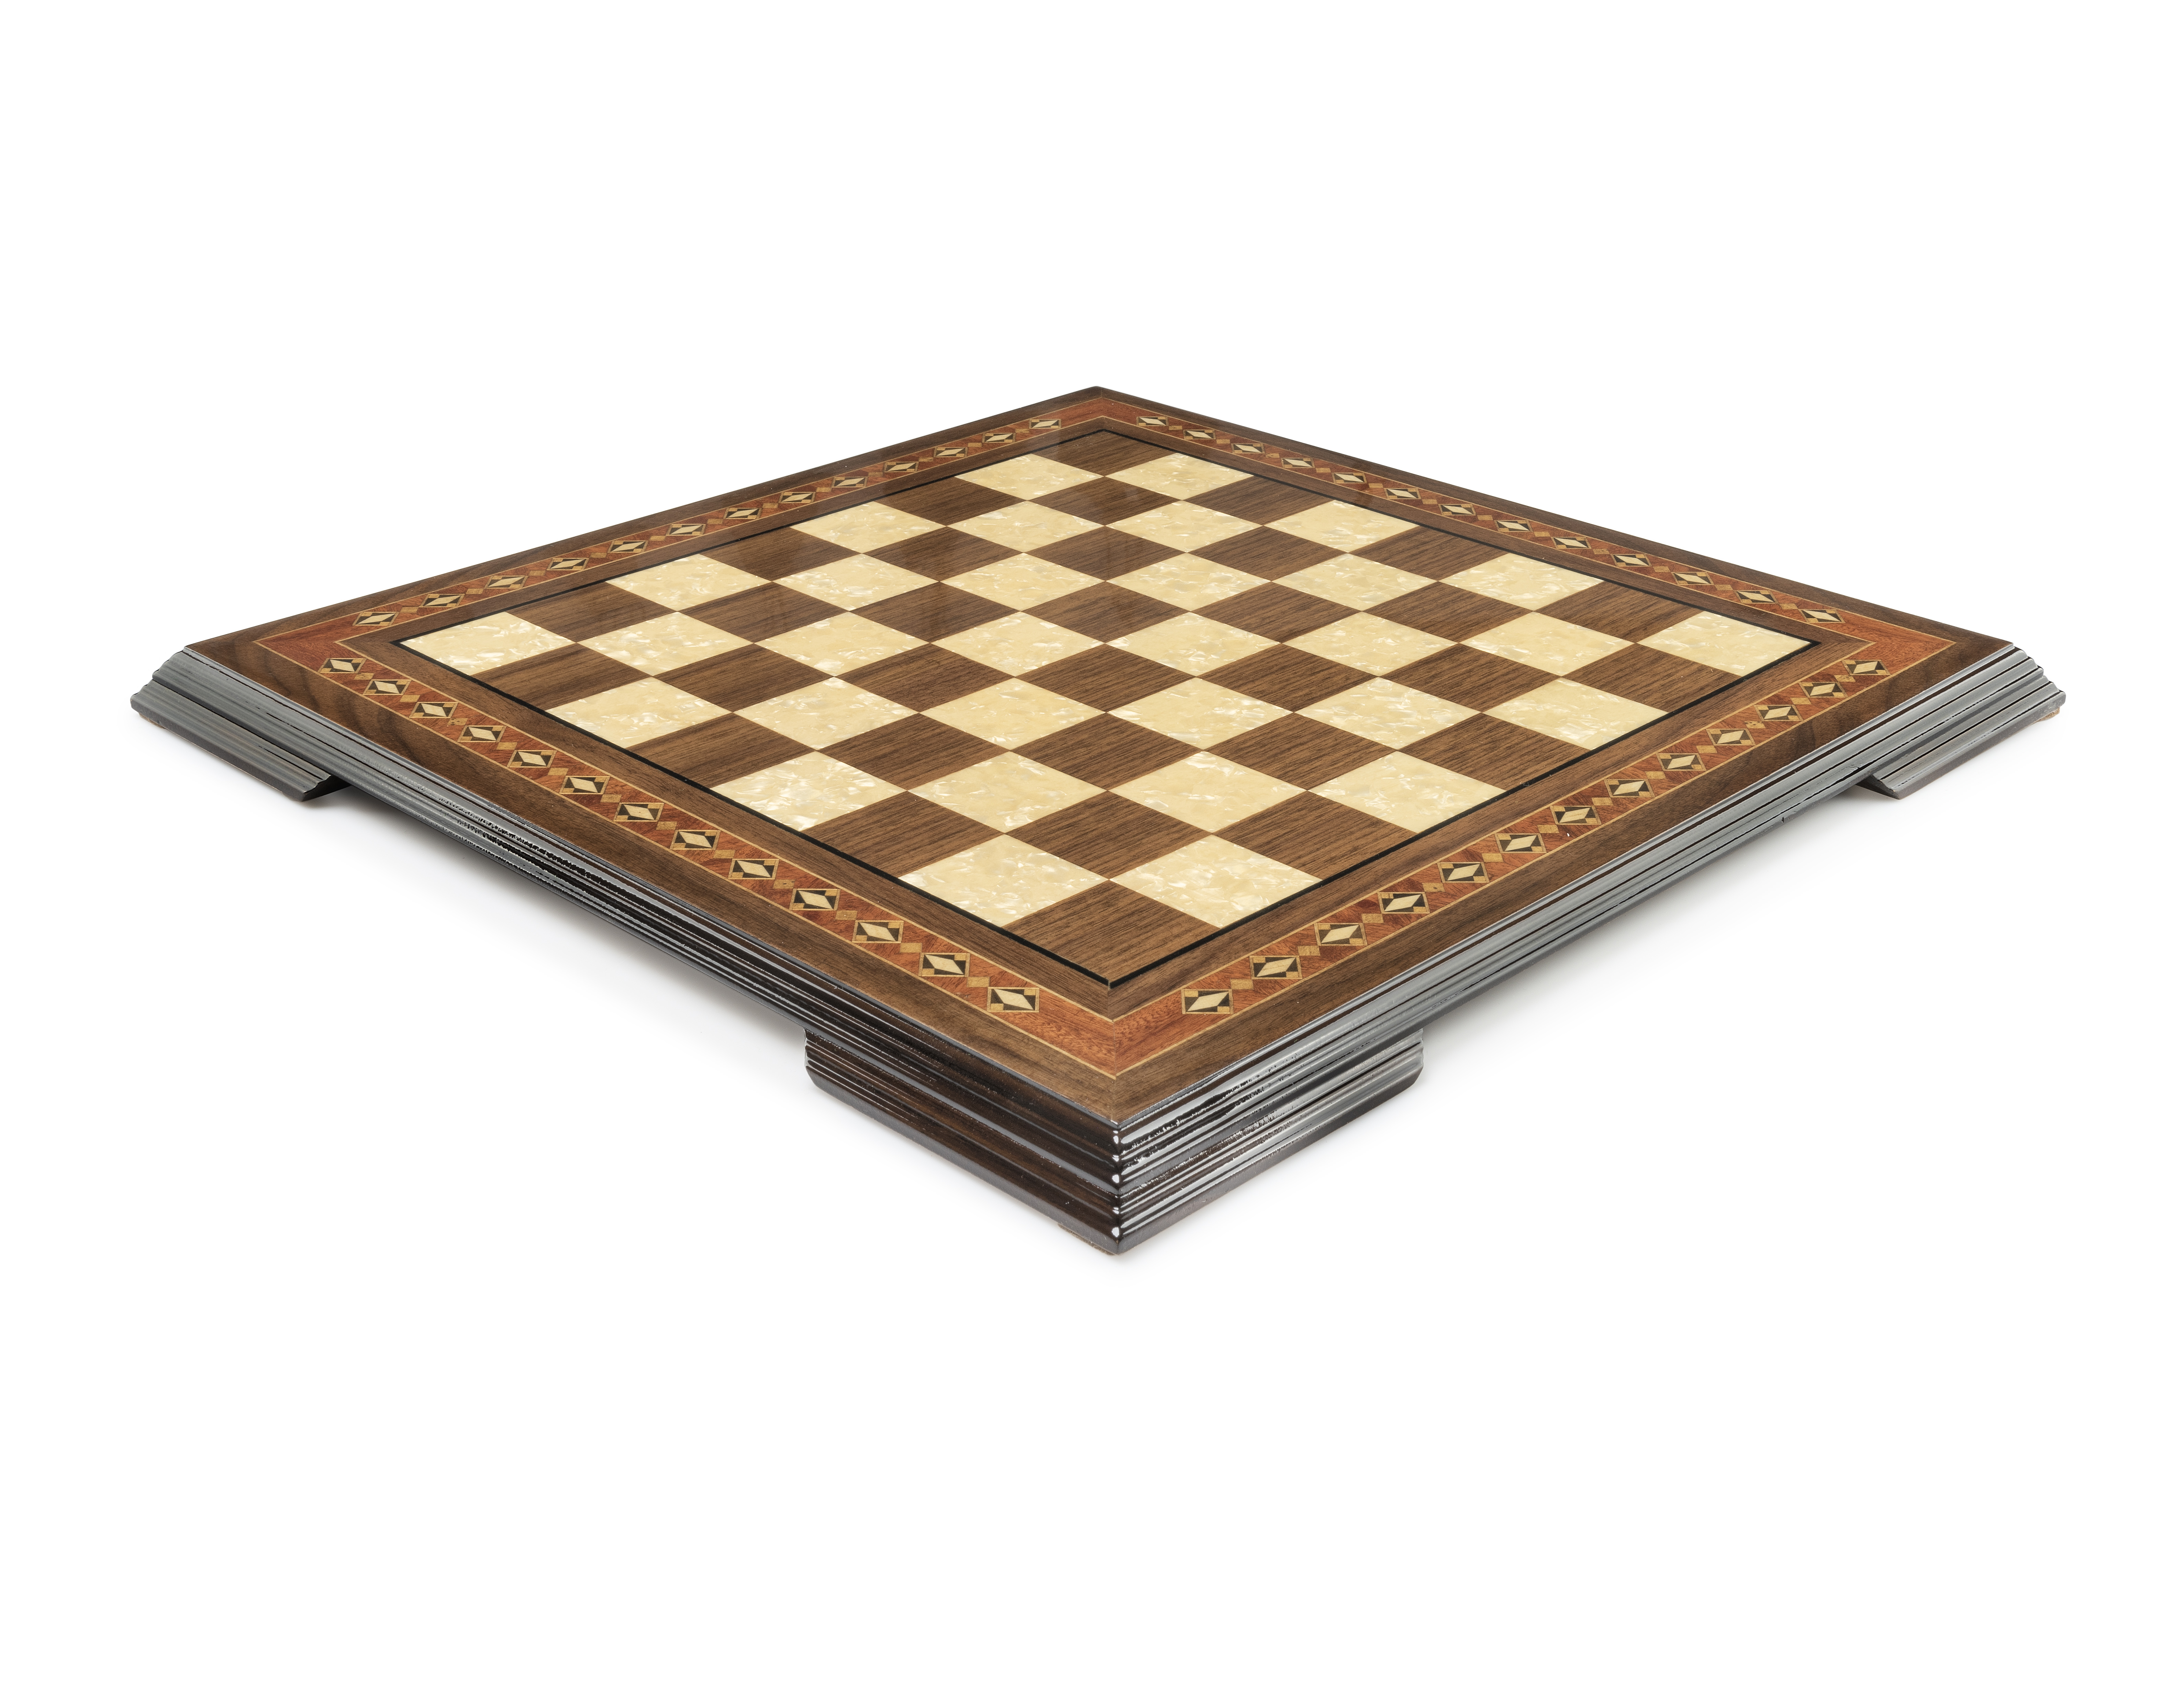 Wooden chessboard Antique